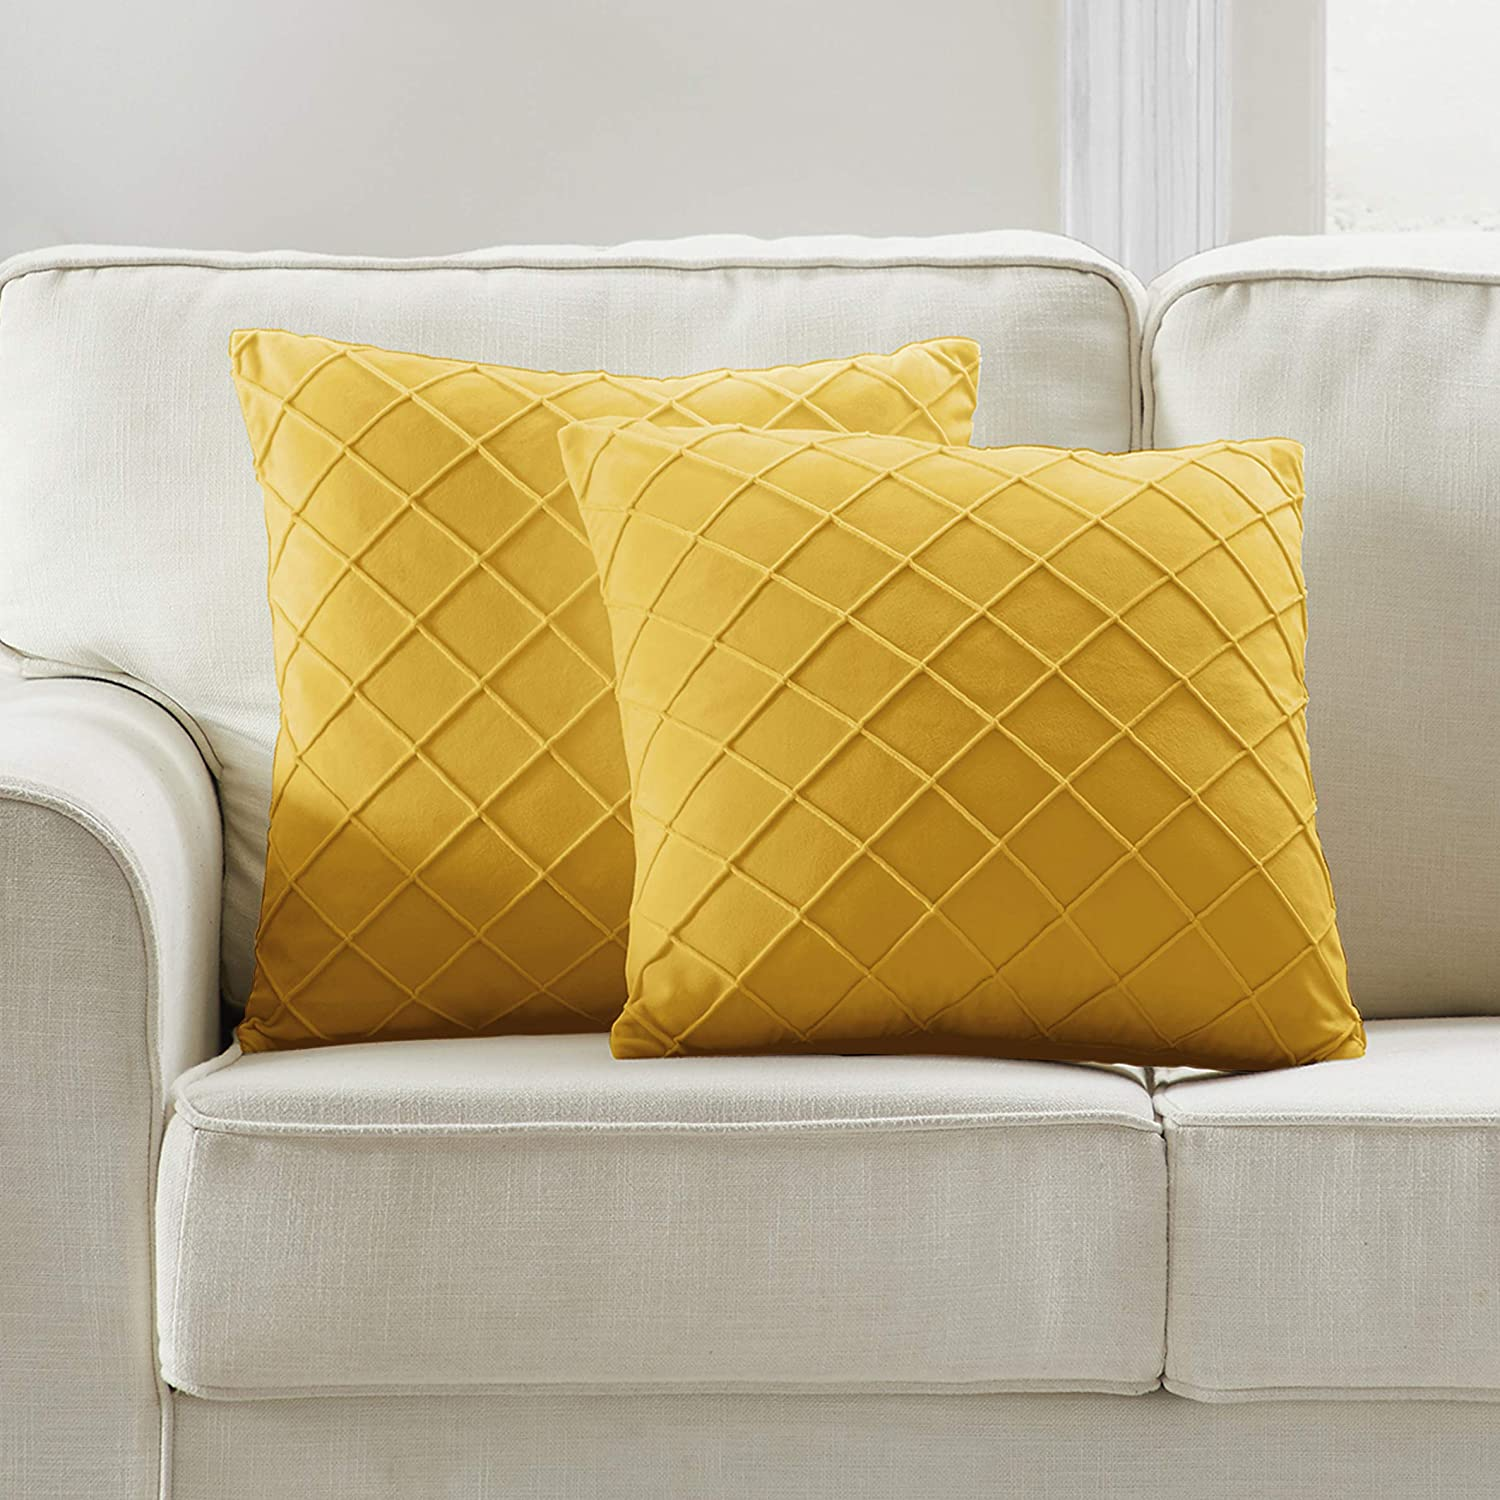 Longhui bedding Yellow Throw Pillow Arlington Mall Decora x Inches 18 Challenge the lowest price of Japan ☆ Cover